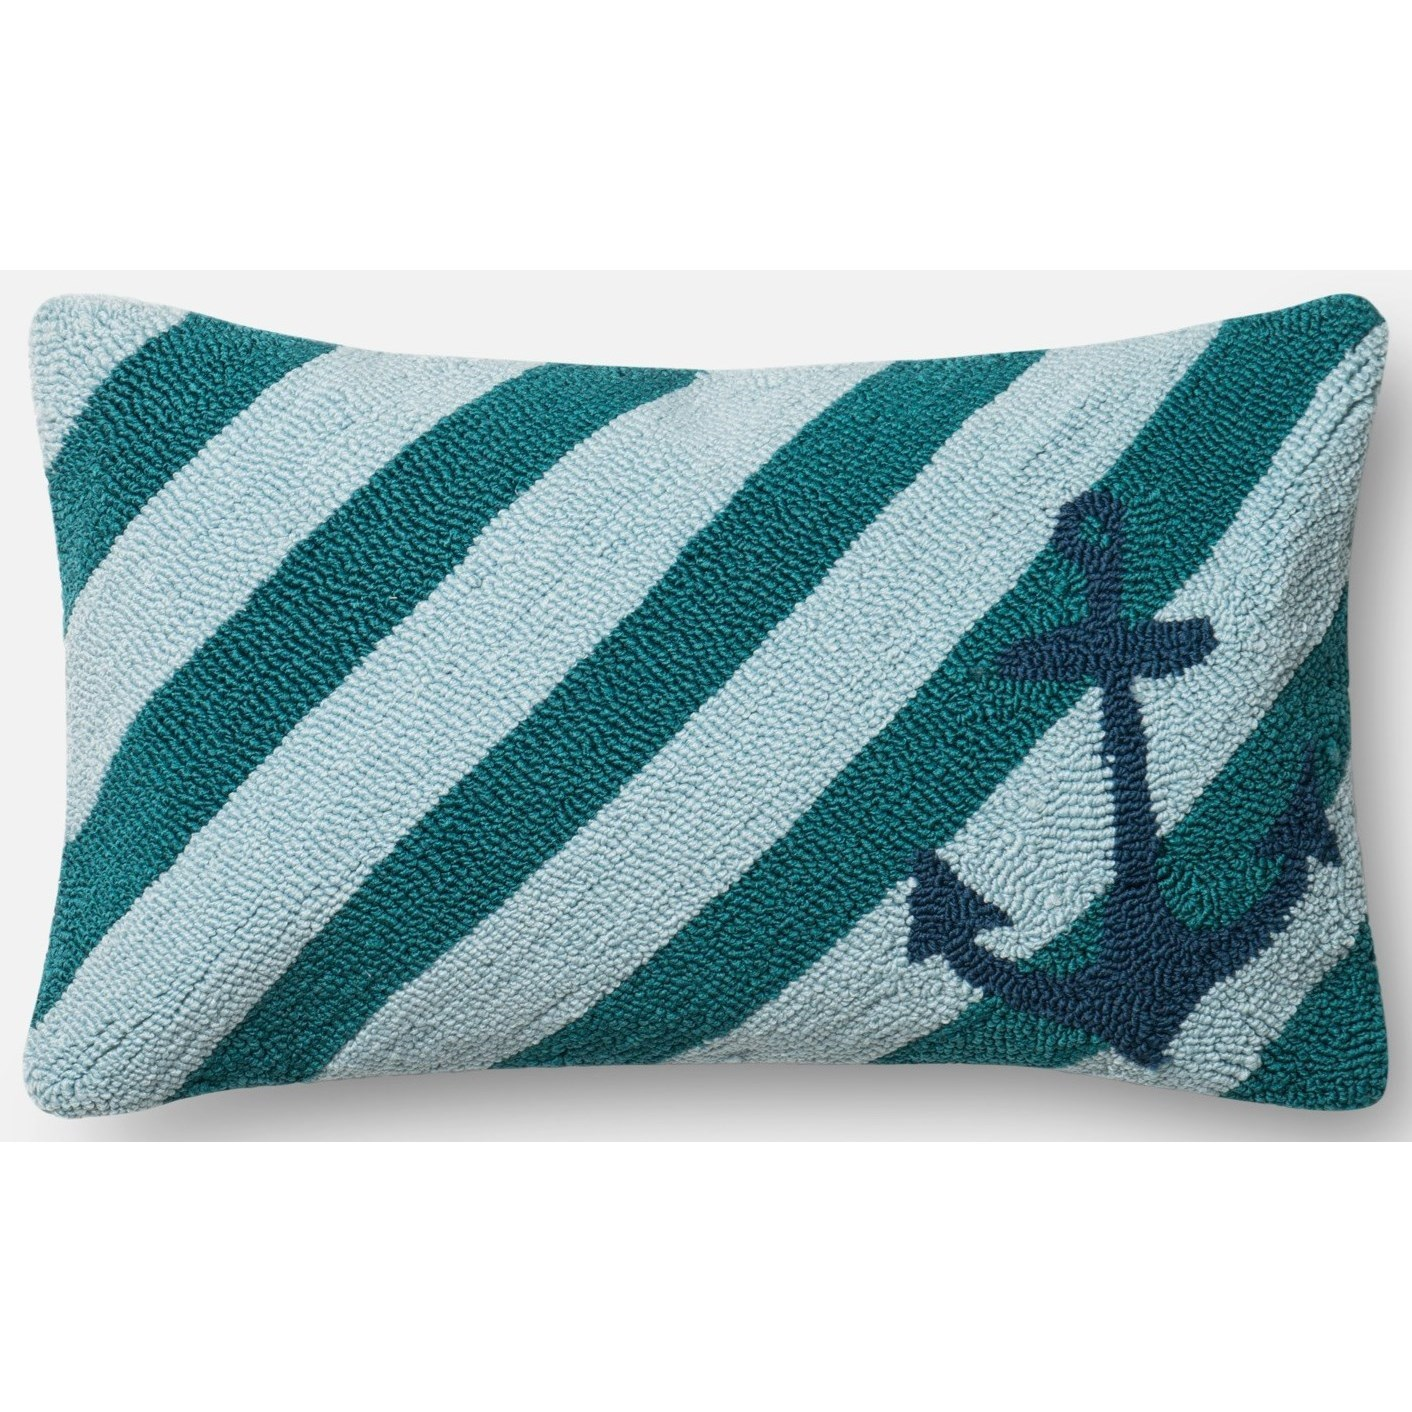 """Indoor/Outdoor Pillows 13"""" X 21""""  Pillow Cover Only by Loloi Rugs at Belfort Furniture"""